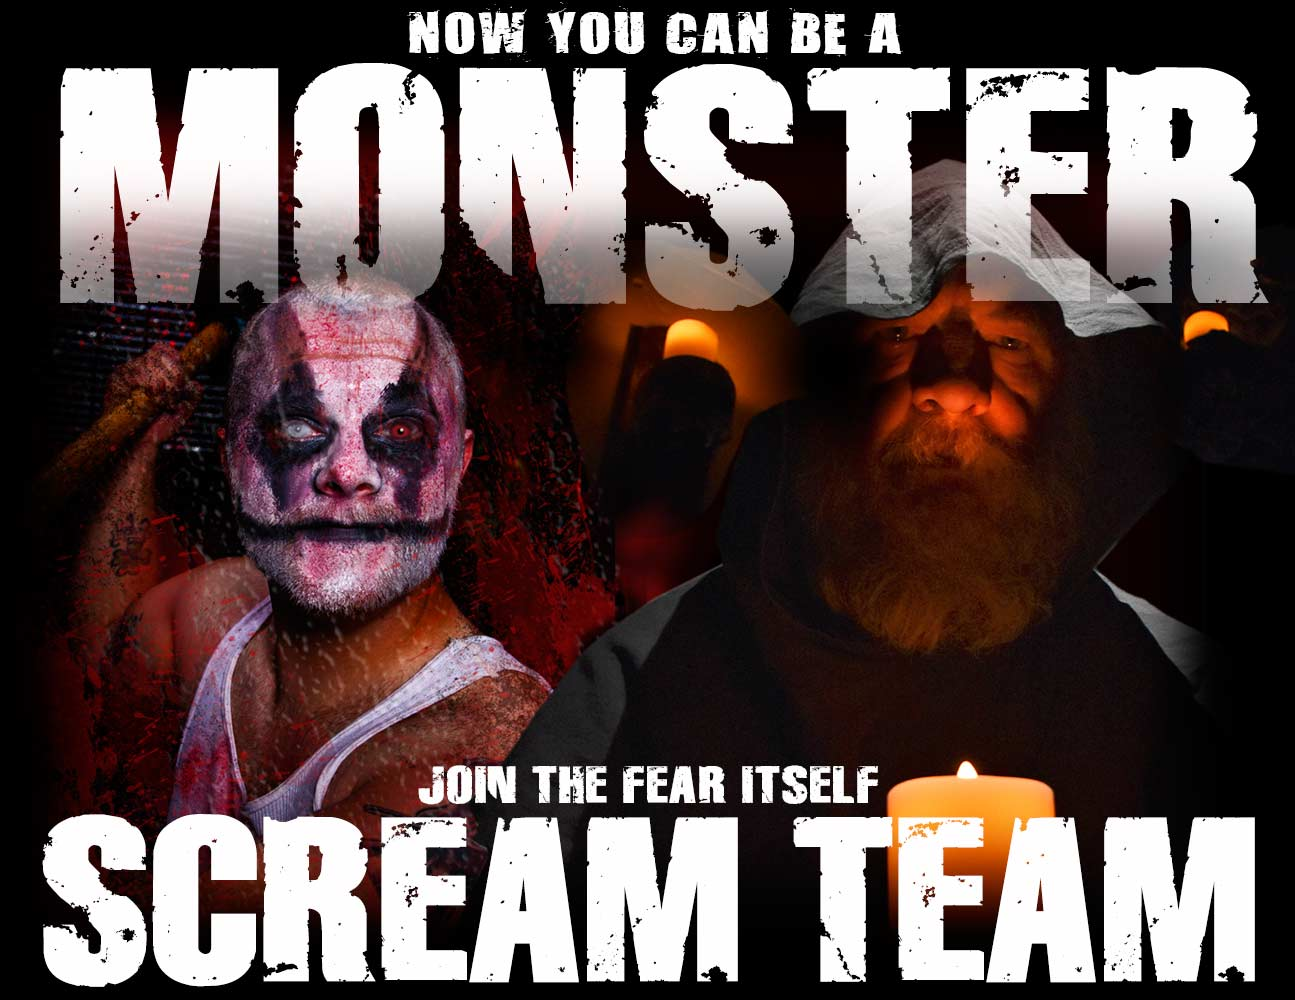 Fear-Itself-Scream-Team-Recruitment.jpg